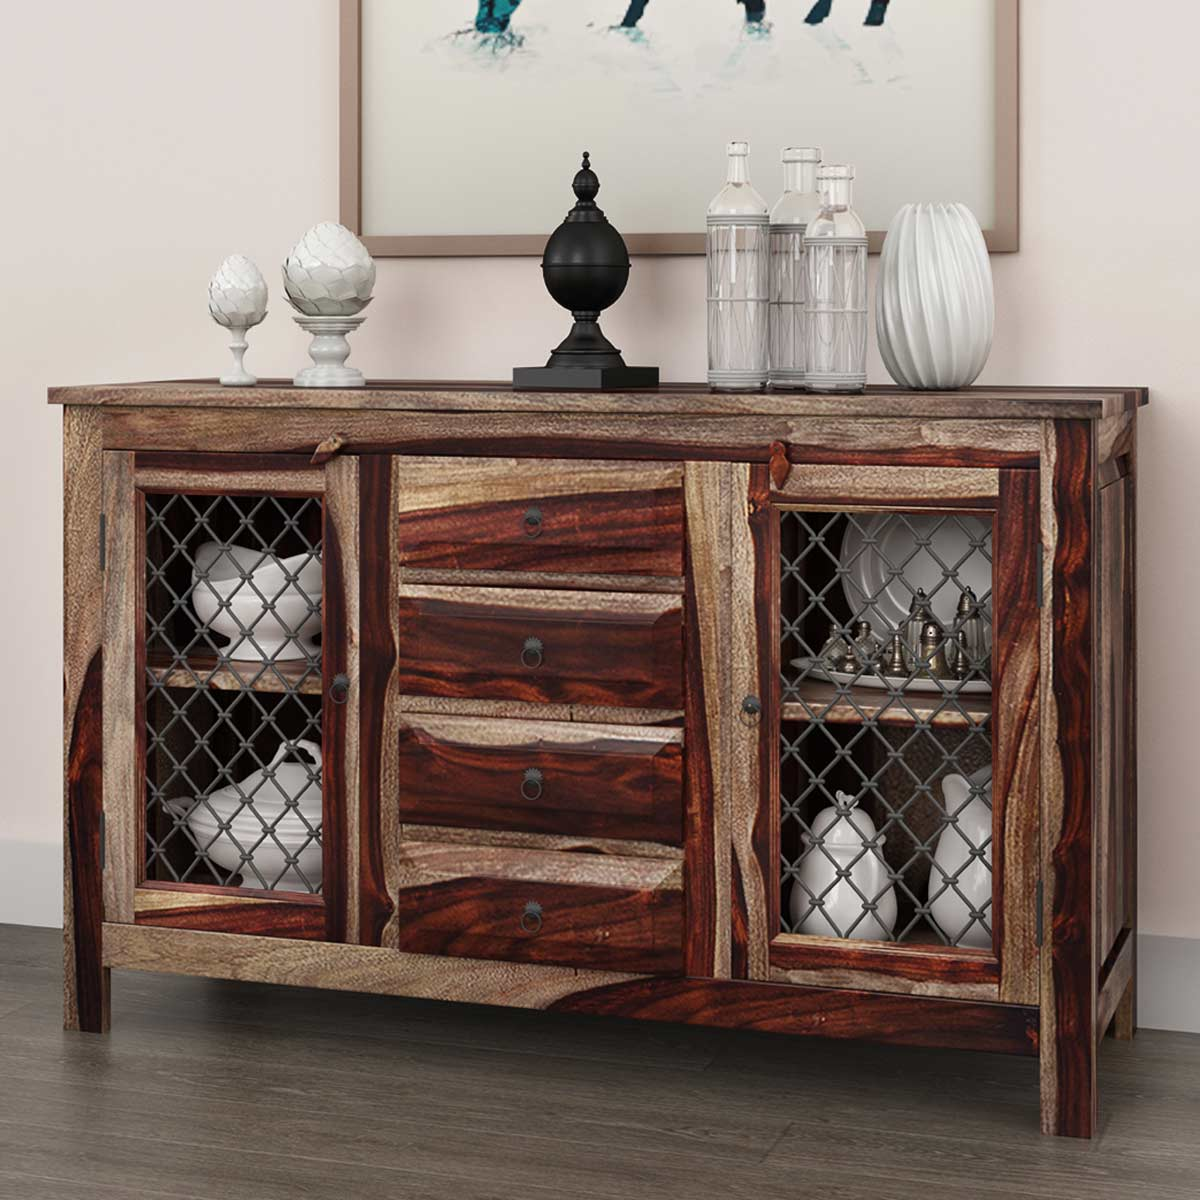 Florida traditional rustic solid wood drawer sideboard